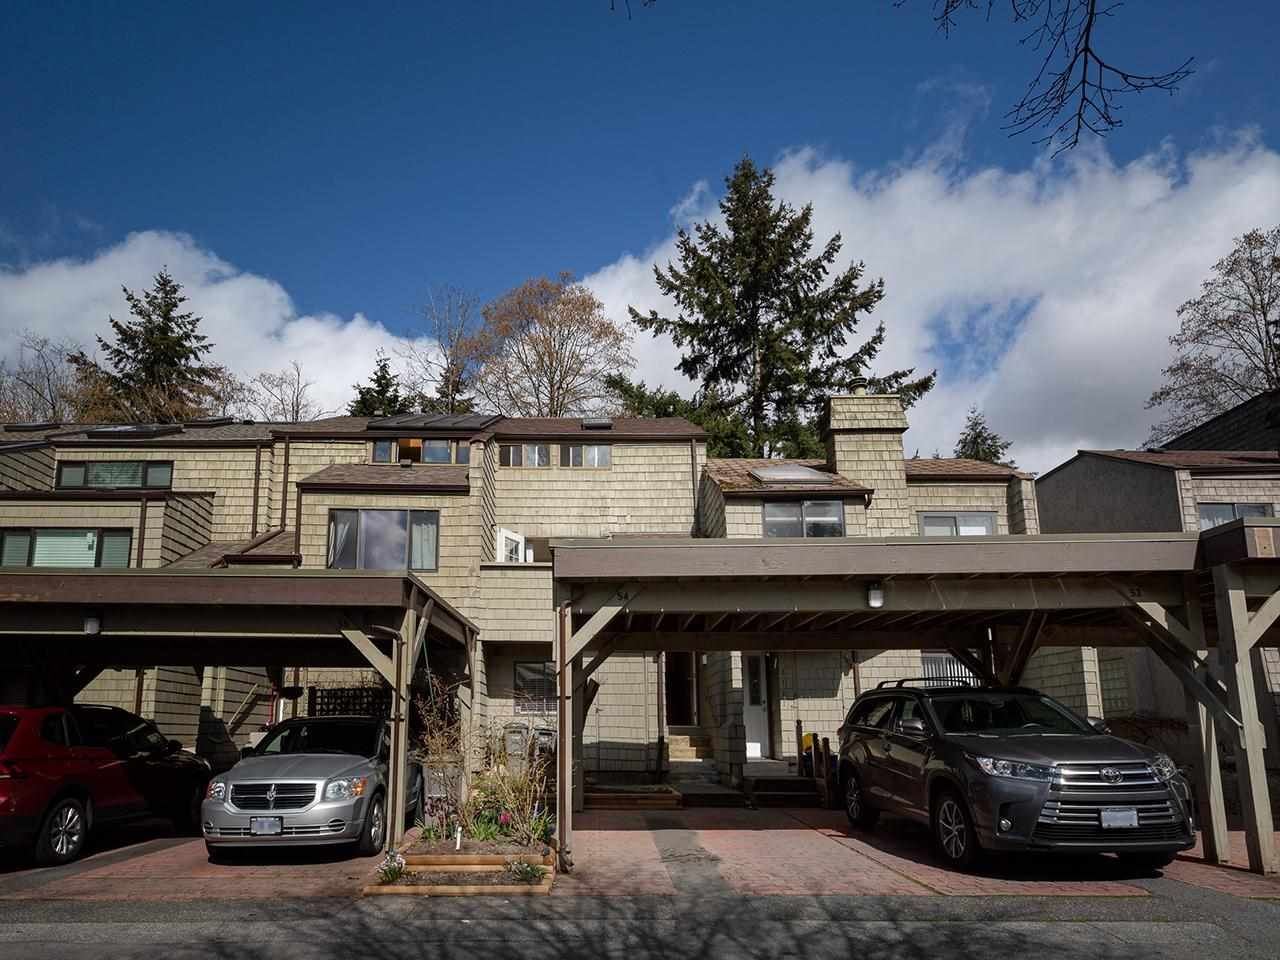 Main Photo: 8123 LAVAL Place in Vancouver: Champlain Heights Townhouse for sale (Vancouver East)  : MLS®# R2588528